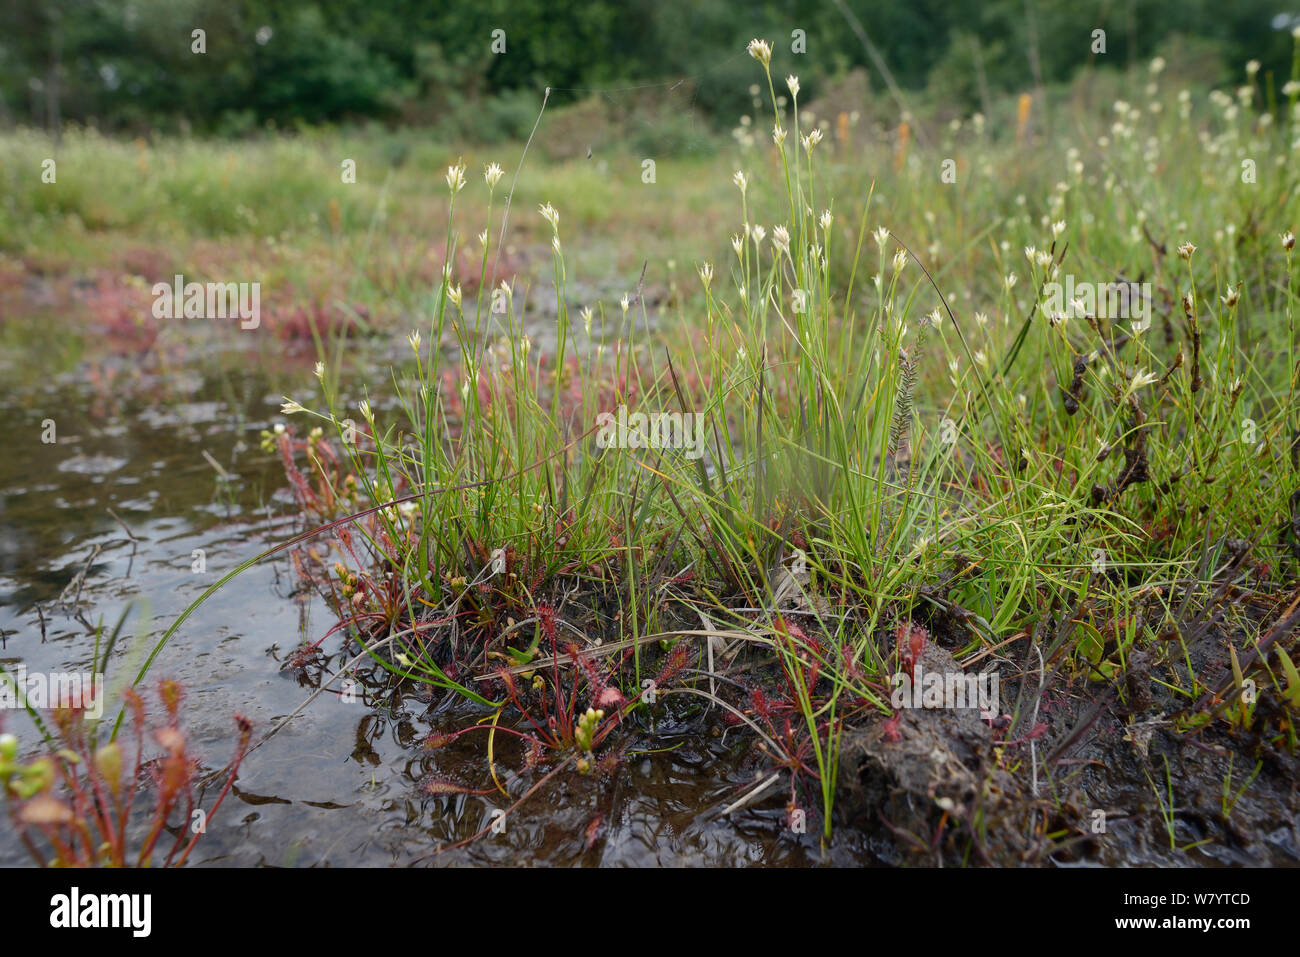 White beak-sedge (Rhynchospora alba) clump flowering in a boggy pool alongside Oblong-leaved sundew clumps (Drosera intermedia) Stoborough Heath, Dorset, UK, July. Stock Photo